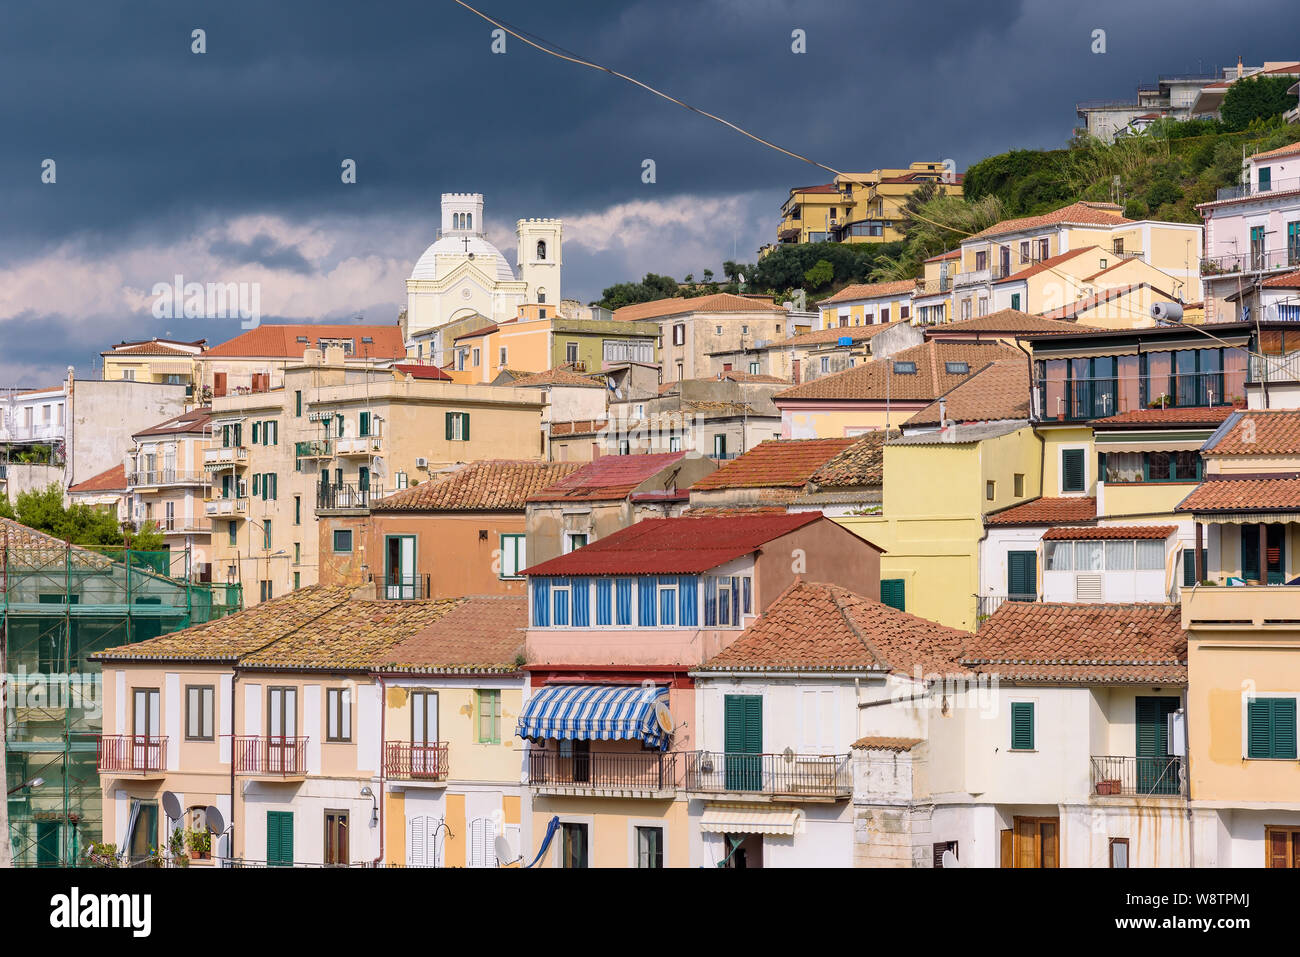 View of residential buildings in Pizzo just before the storm. Stock Photo